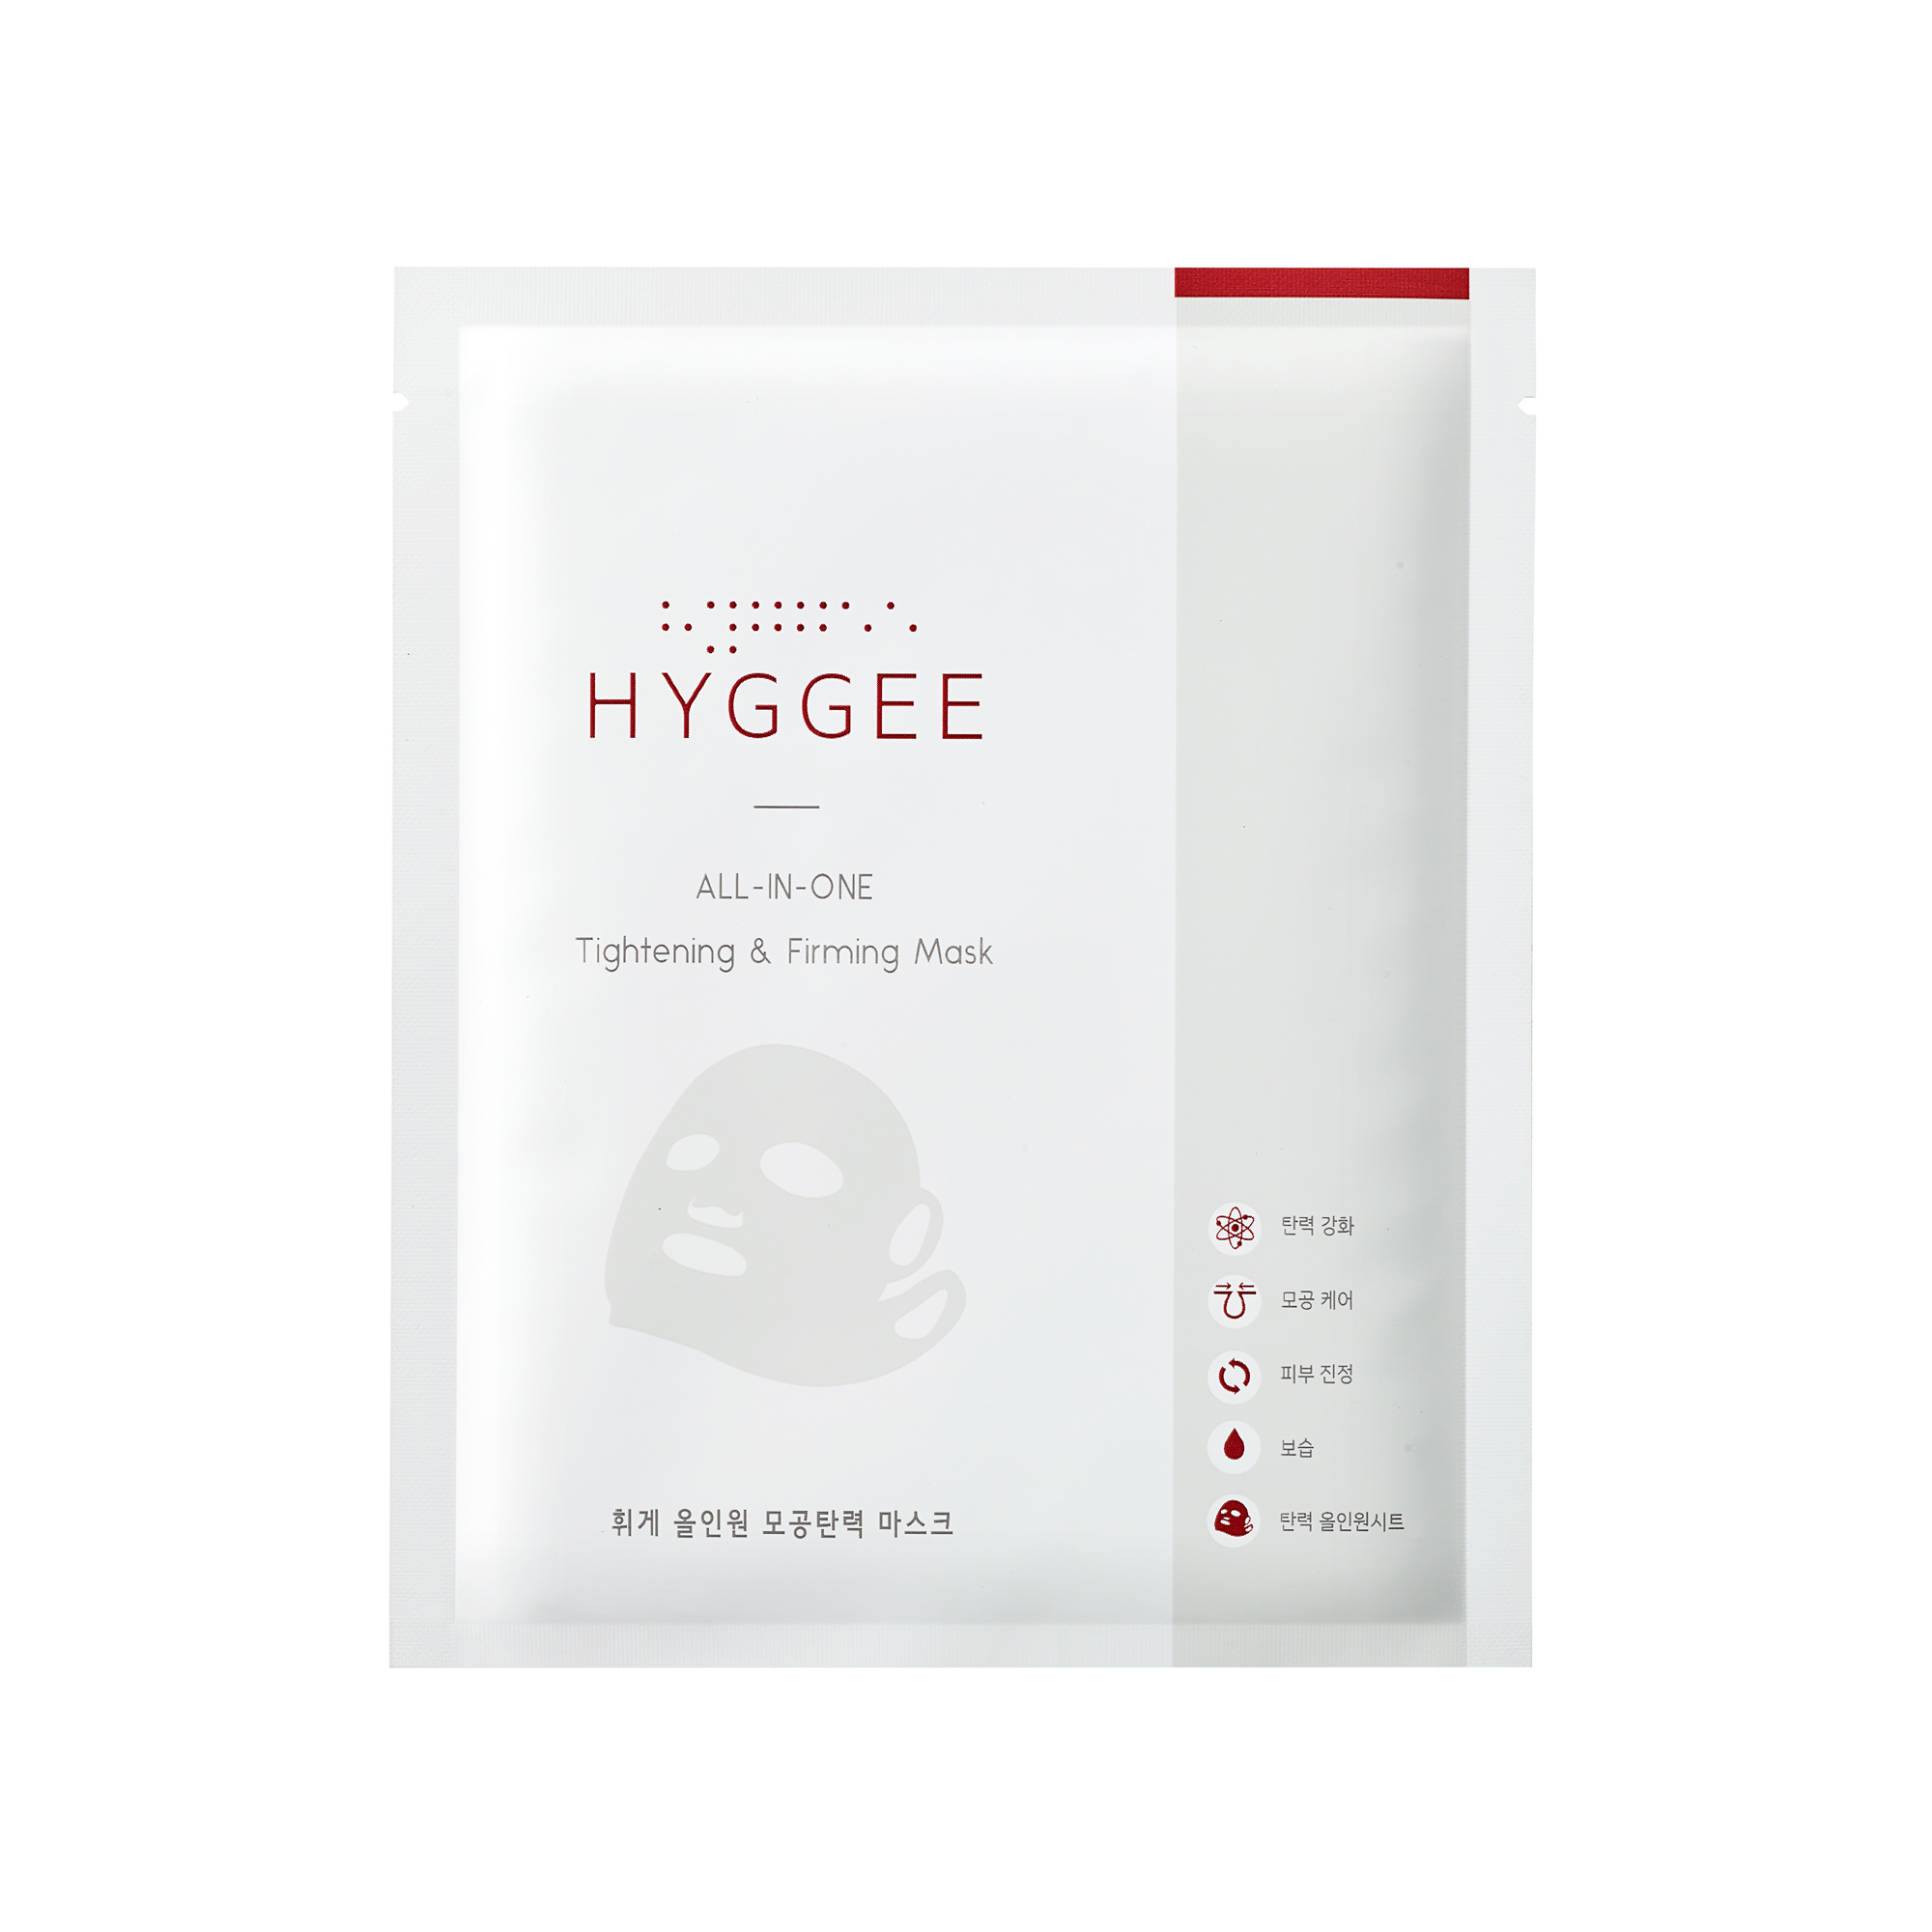 [HYGGEE] All-In-One Tightening & Firming Mask 1ea